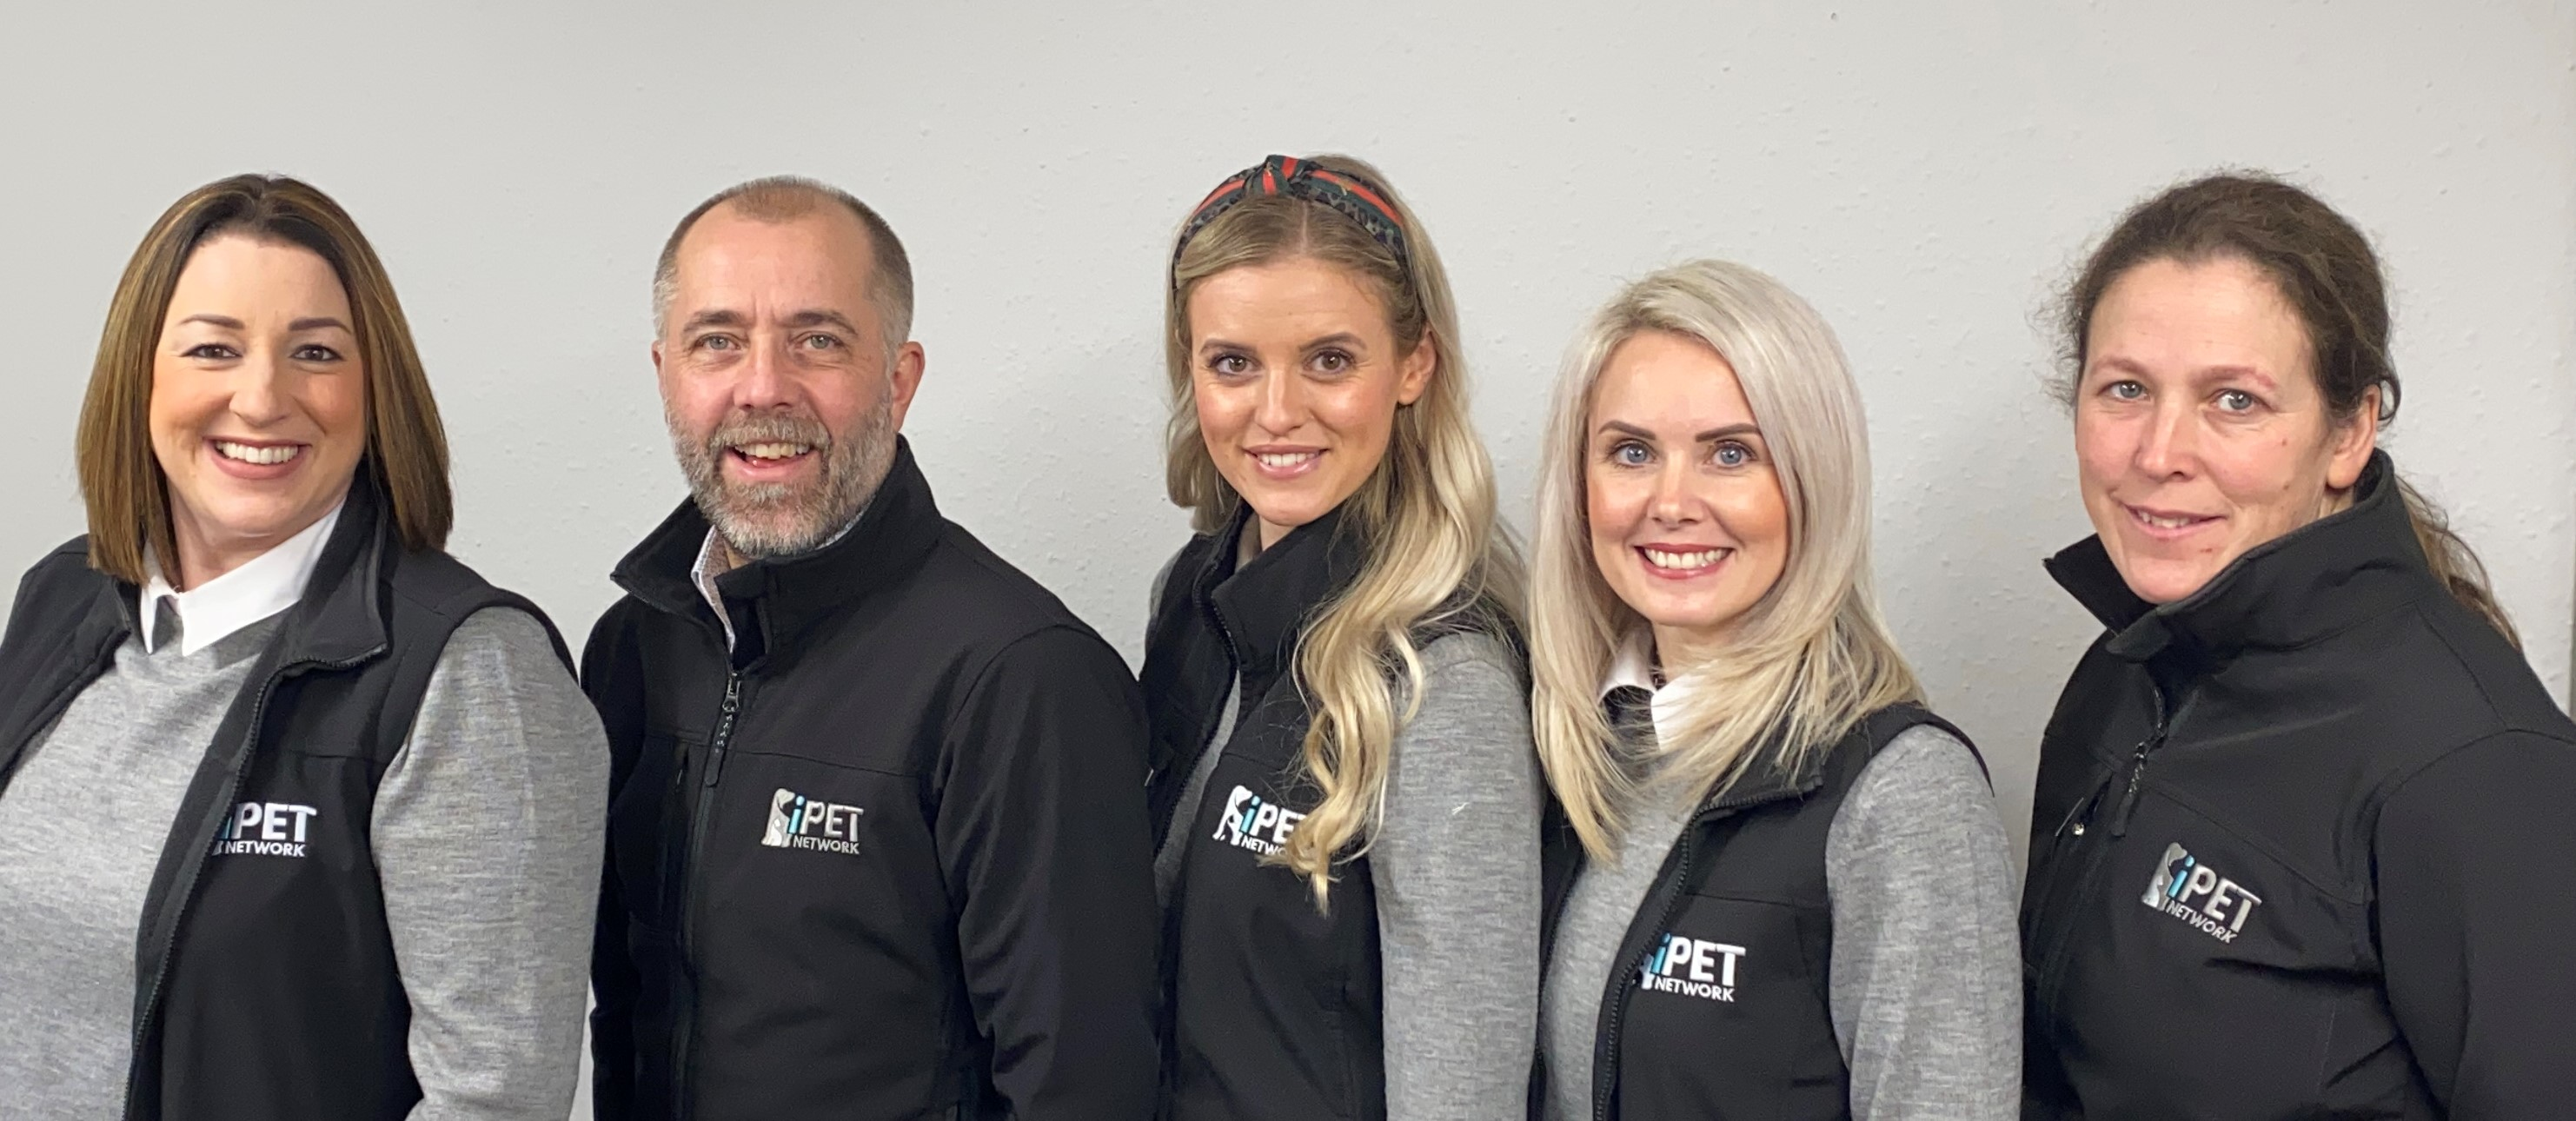 The iPET Network Team